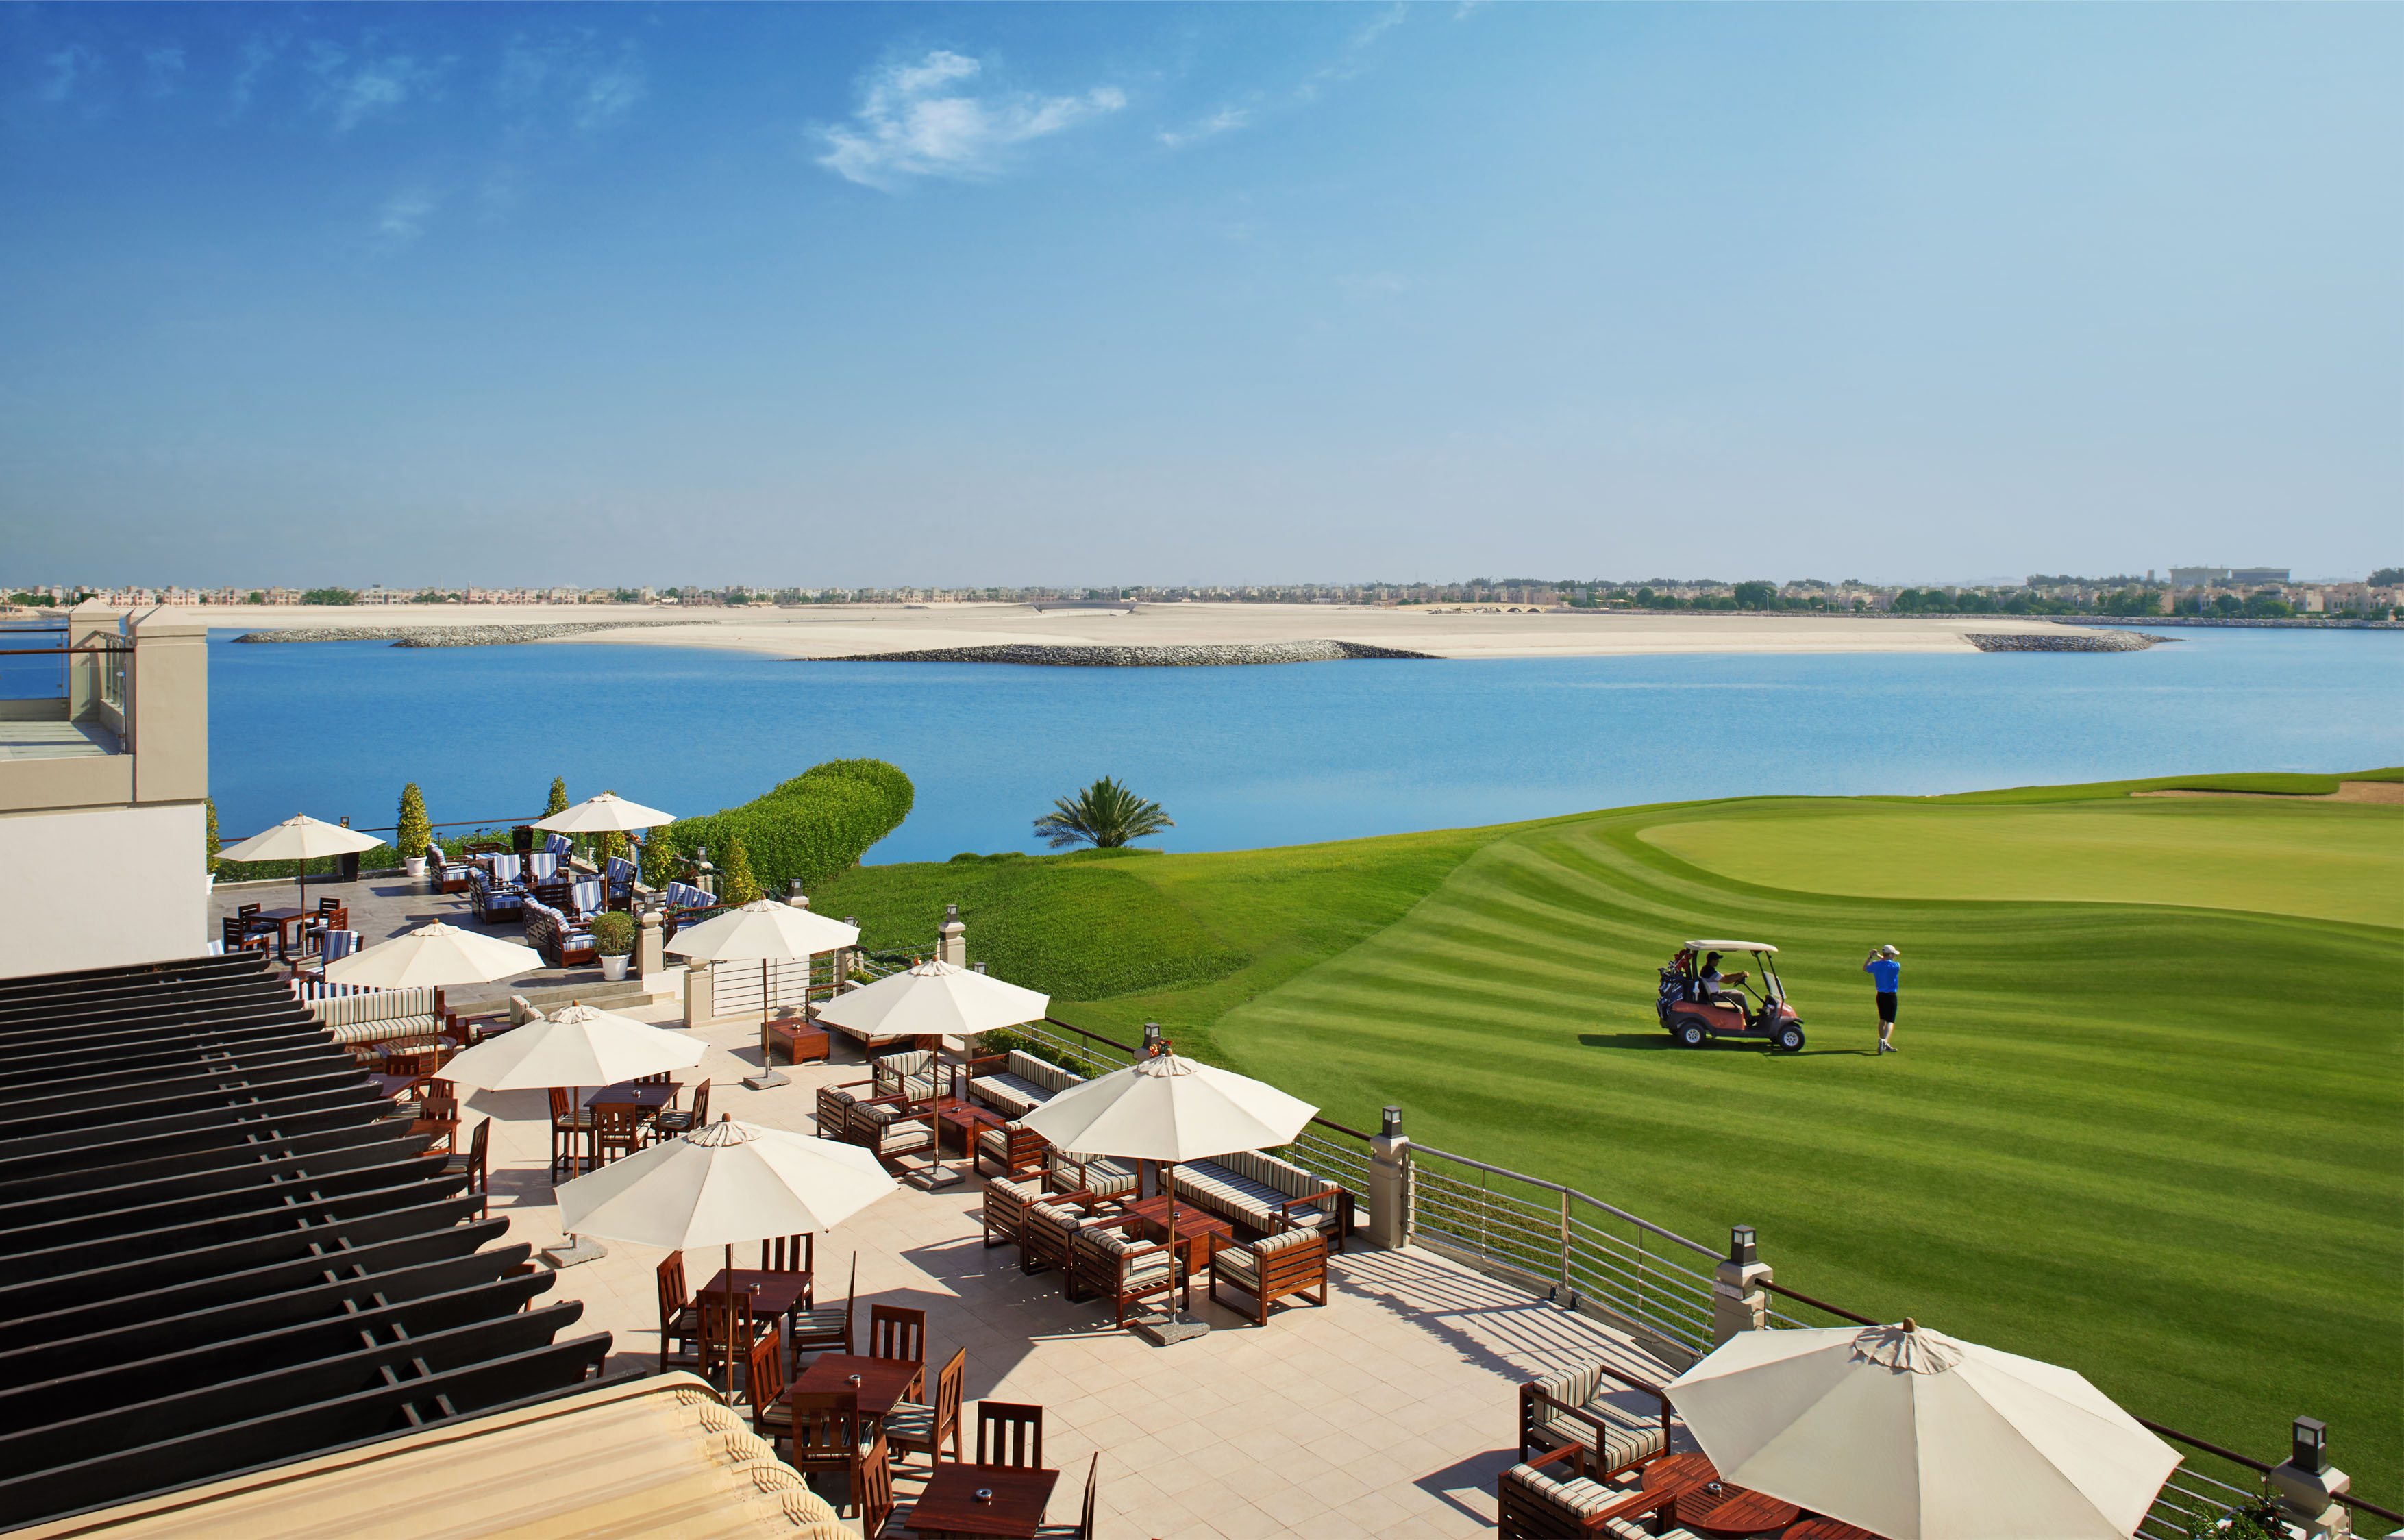 Al Hamra Golf Club launches the region's most flexible membership